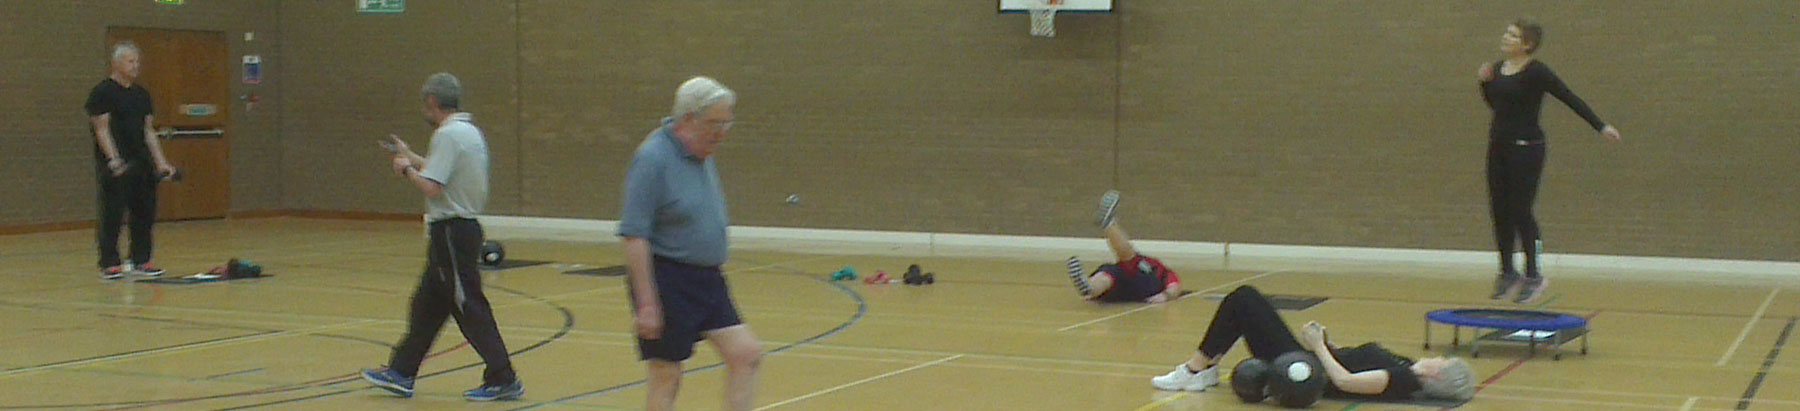 Supporting cancer patients with fitness and well-being